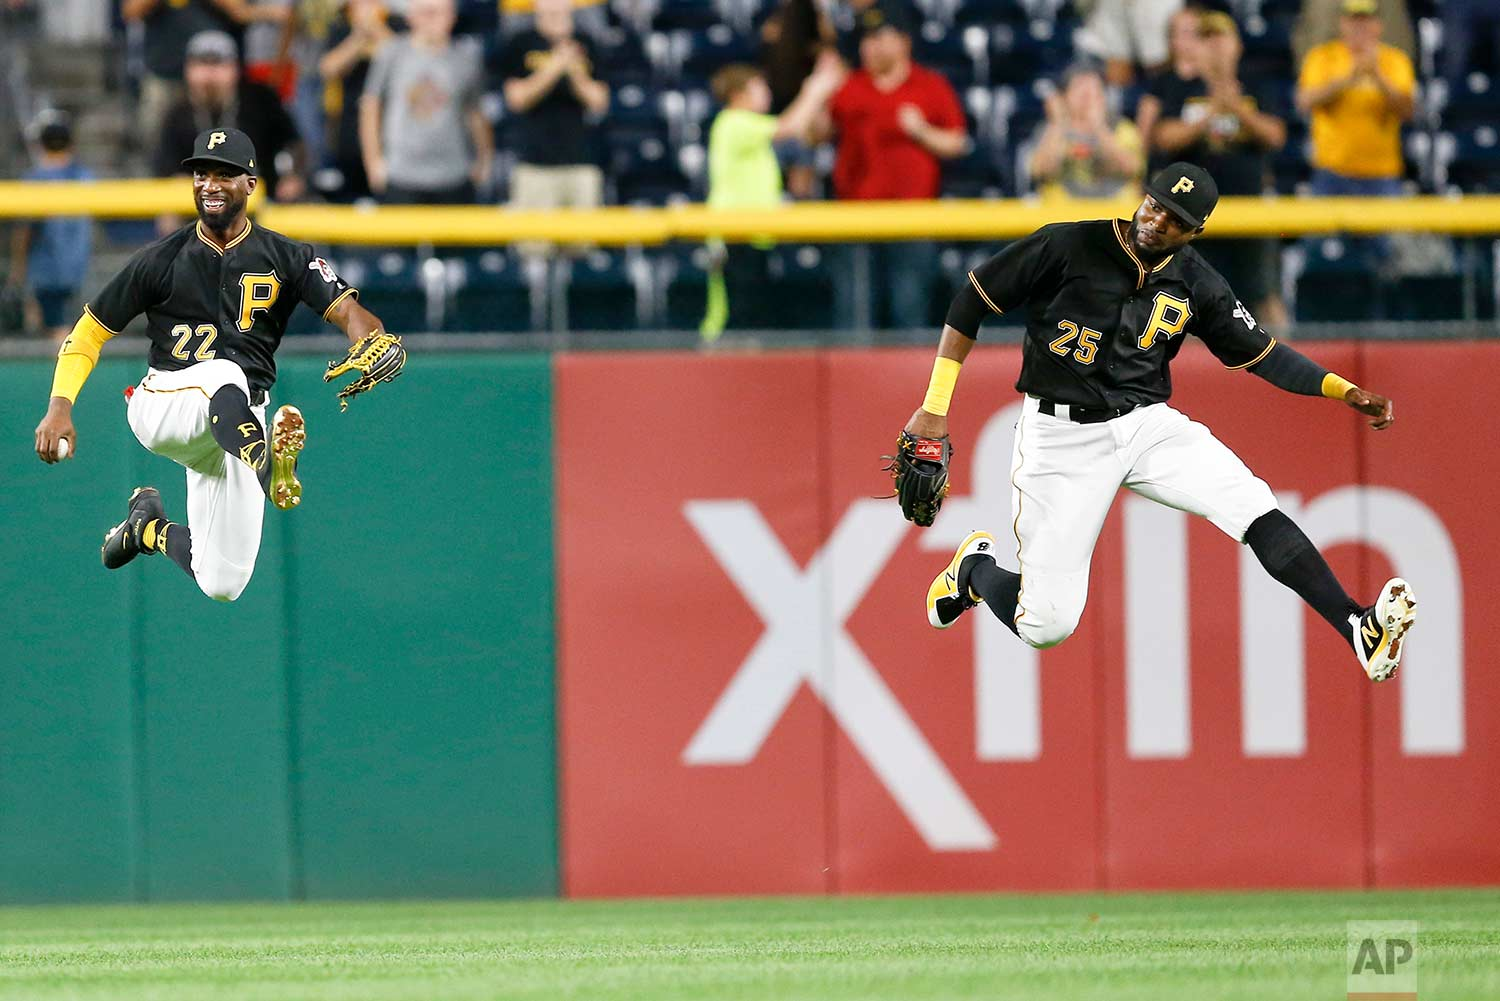 Pittsburgh Pirates center fielder Andrew McCutchen (22) and right fielder Gregory Polanco (25) leap in celebration after the Pirates defeated the Baltimore Orioles 5-3 in a baseball game, Wednesday, Sept. 27, 2017, in Pittsburgh. (AP Photo/Keith Srakocic)